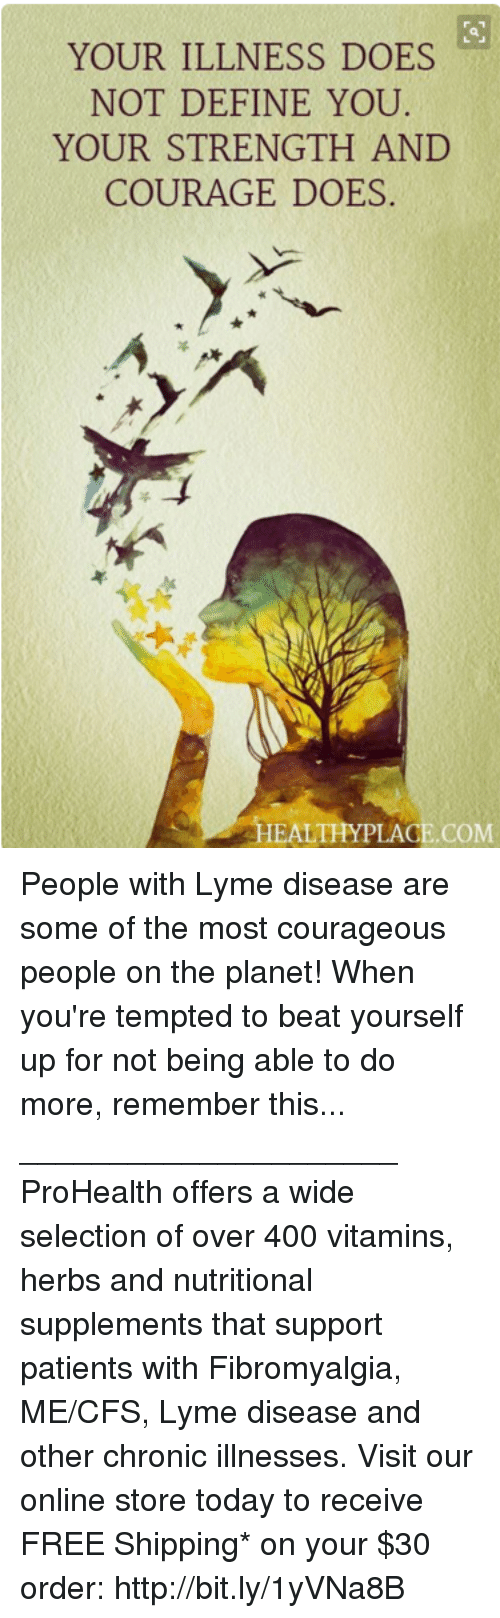 YOUR ILLNESS DOES NOT DEFINE YOU YOUR STRENGTH AND COURAGE